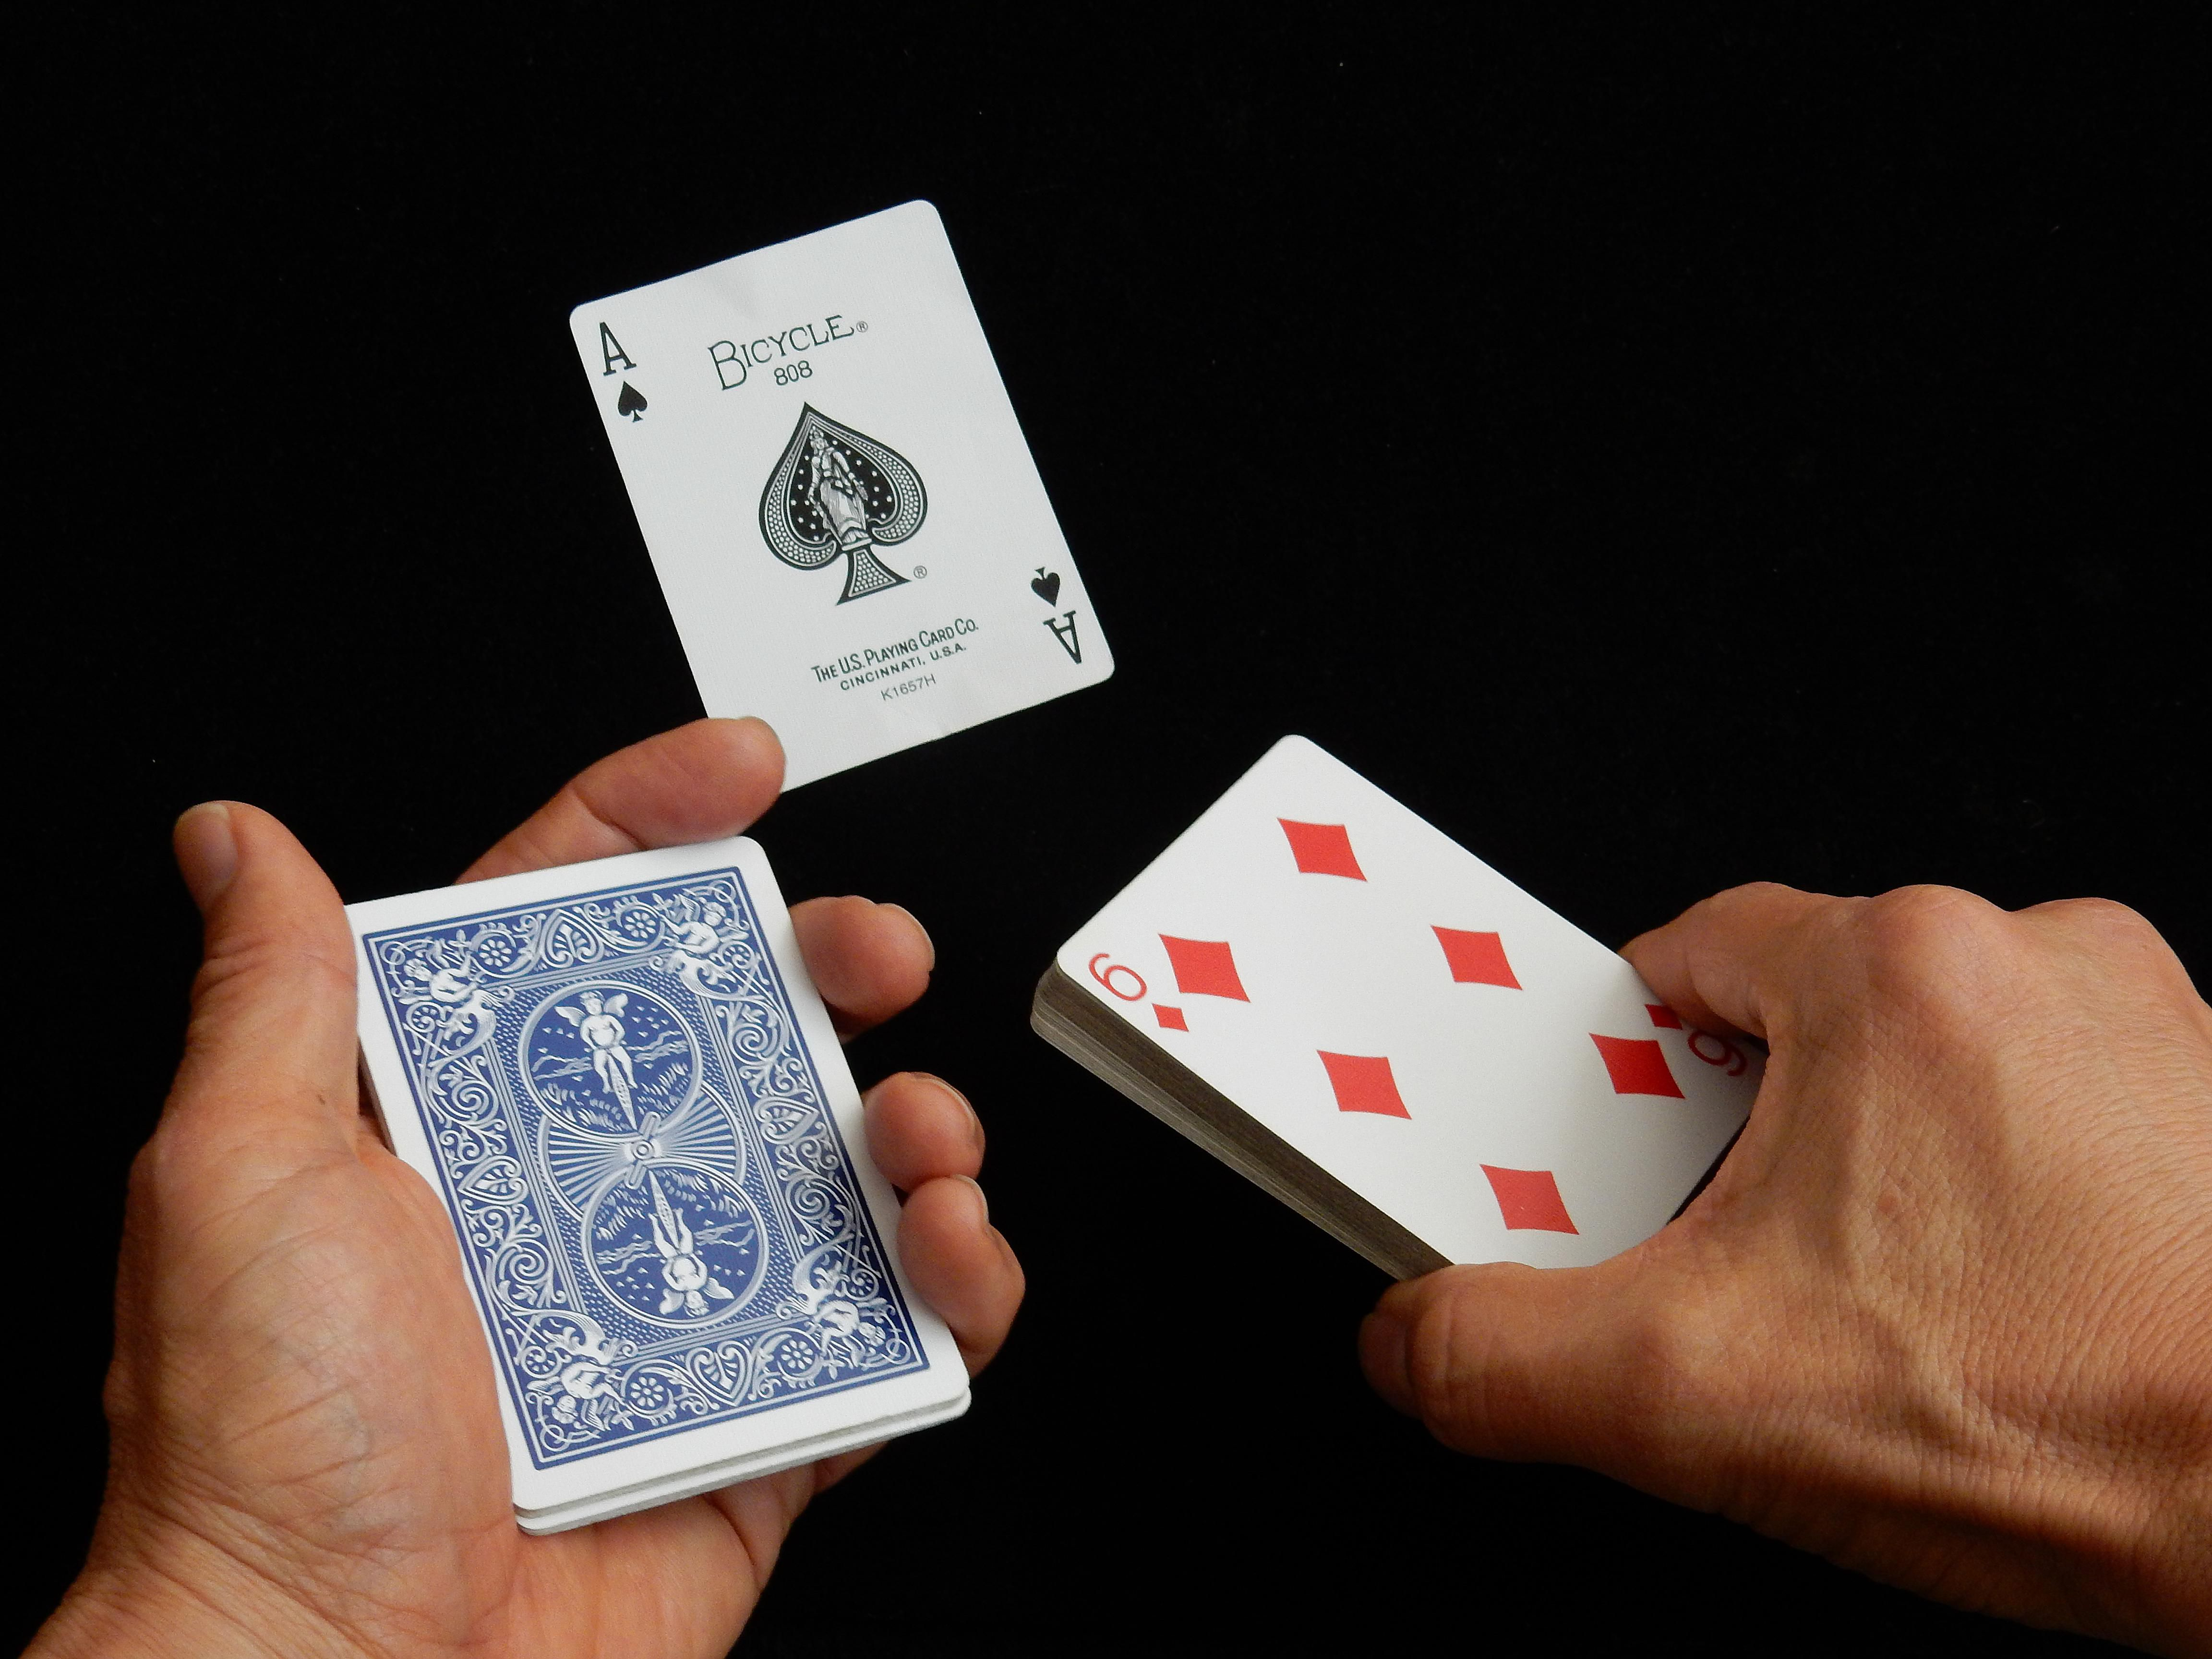 A split deck and an ace of spades